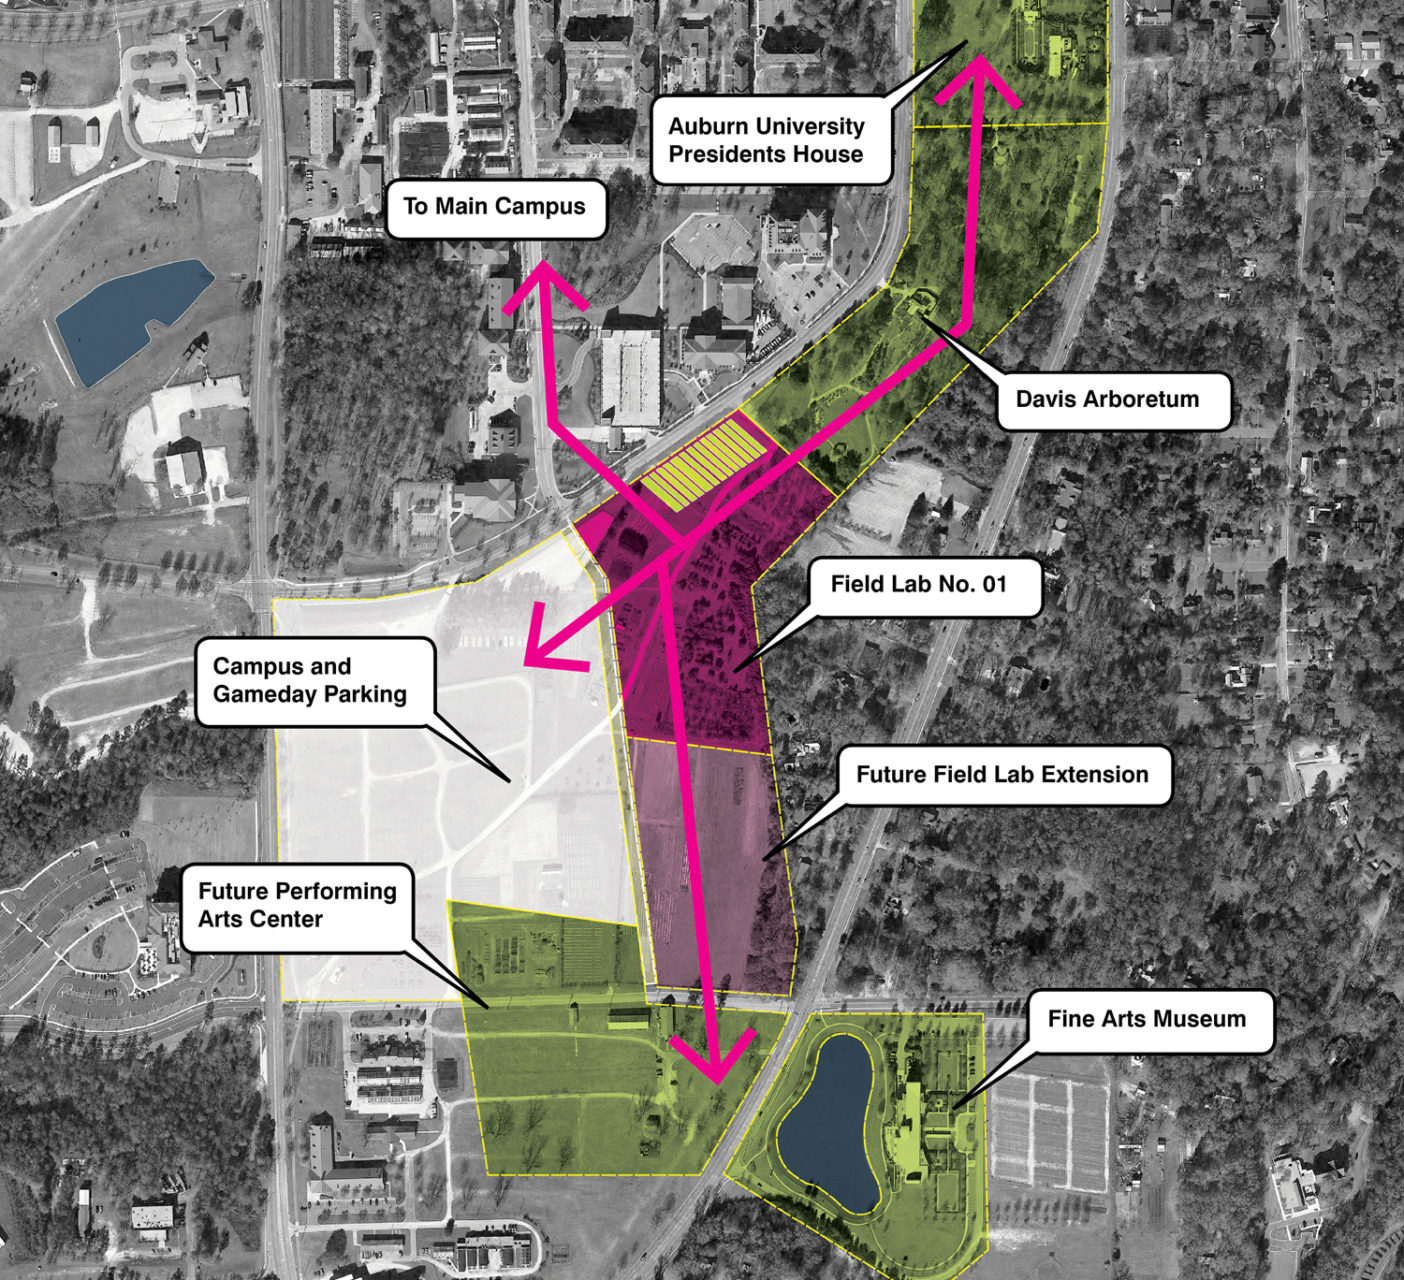 CAMPUS TRAIL NETWORK: An emerging trail system integrates the field lab into other centers of the campus and greater community.